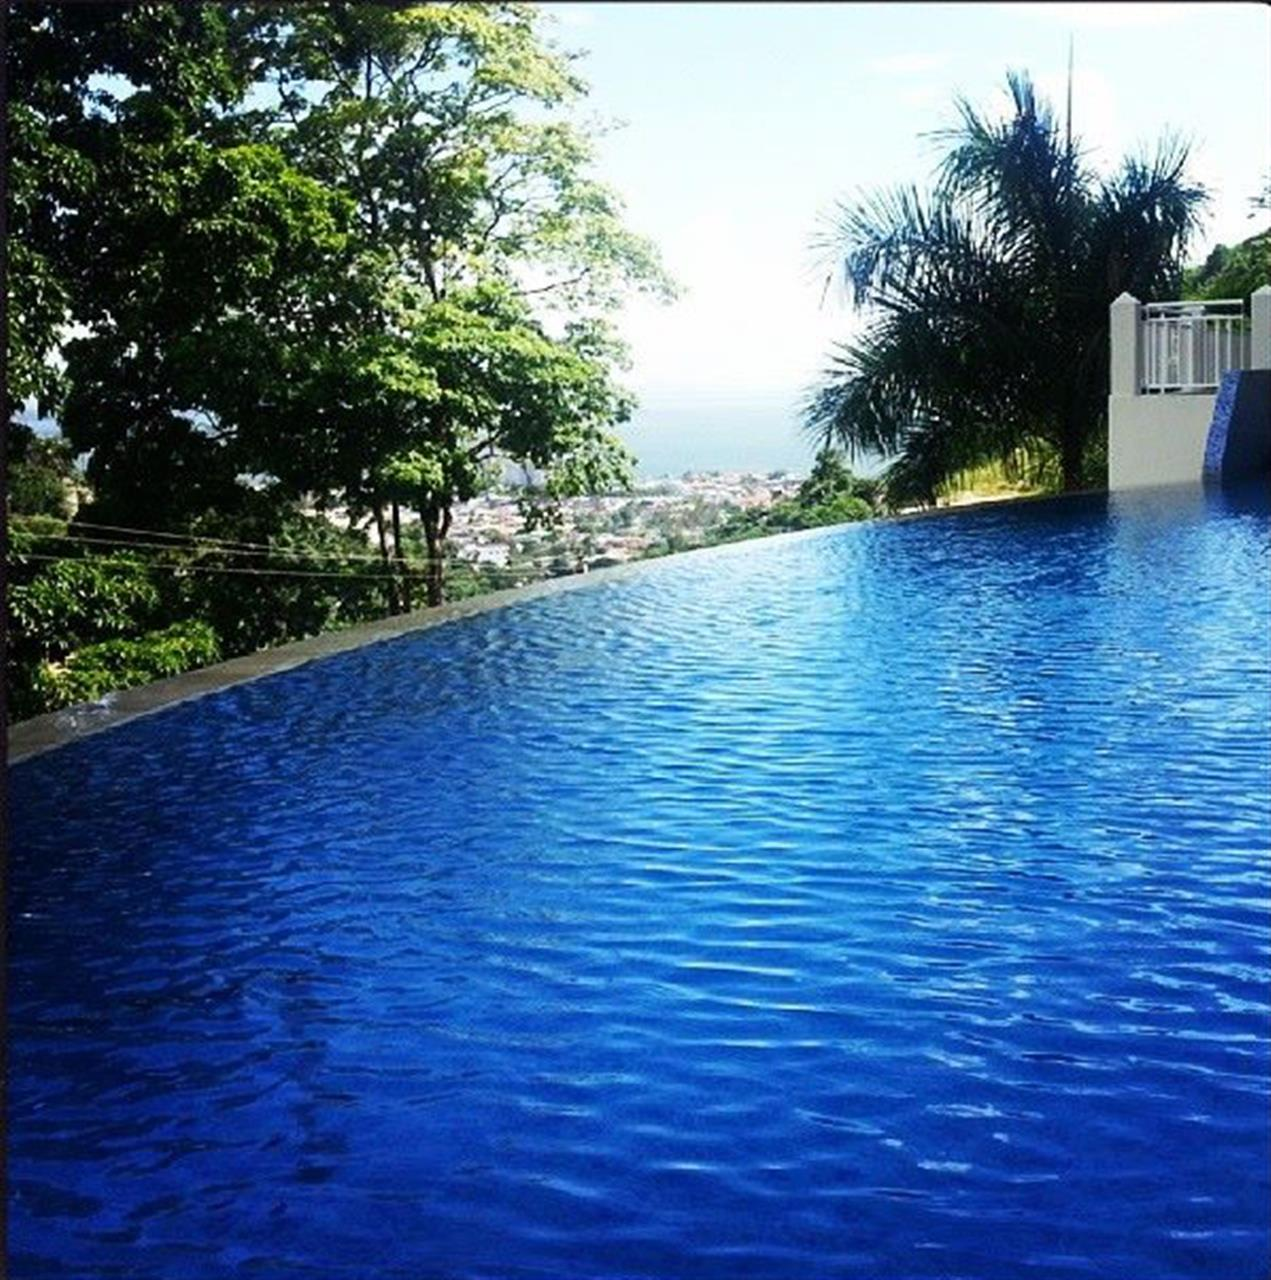 Pool views from Goodwood Park, Trinidad